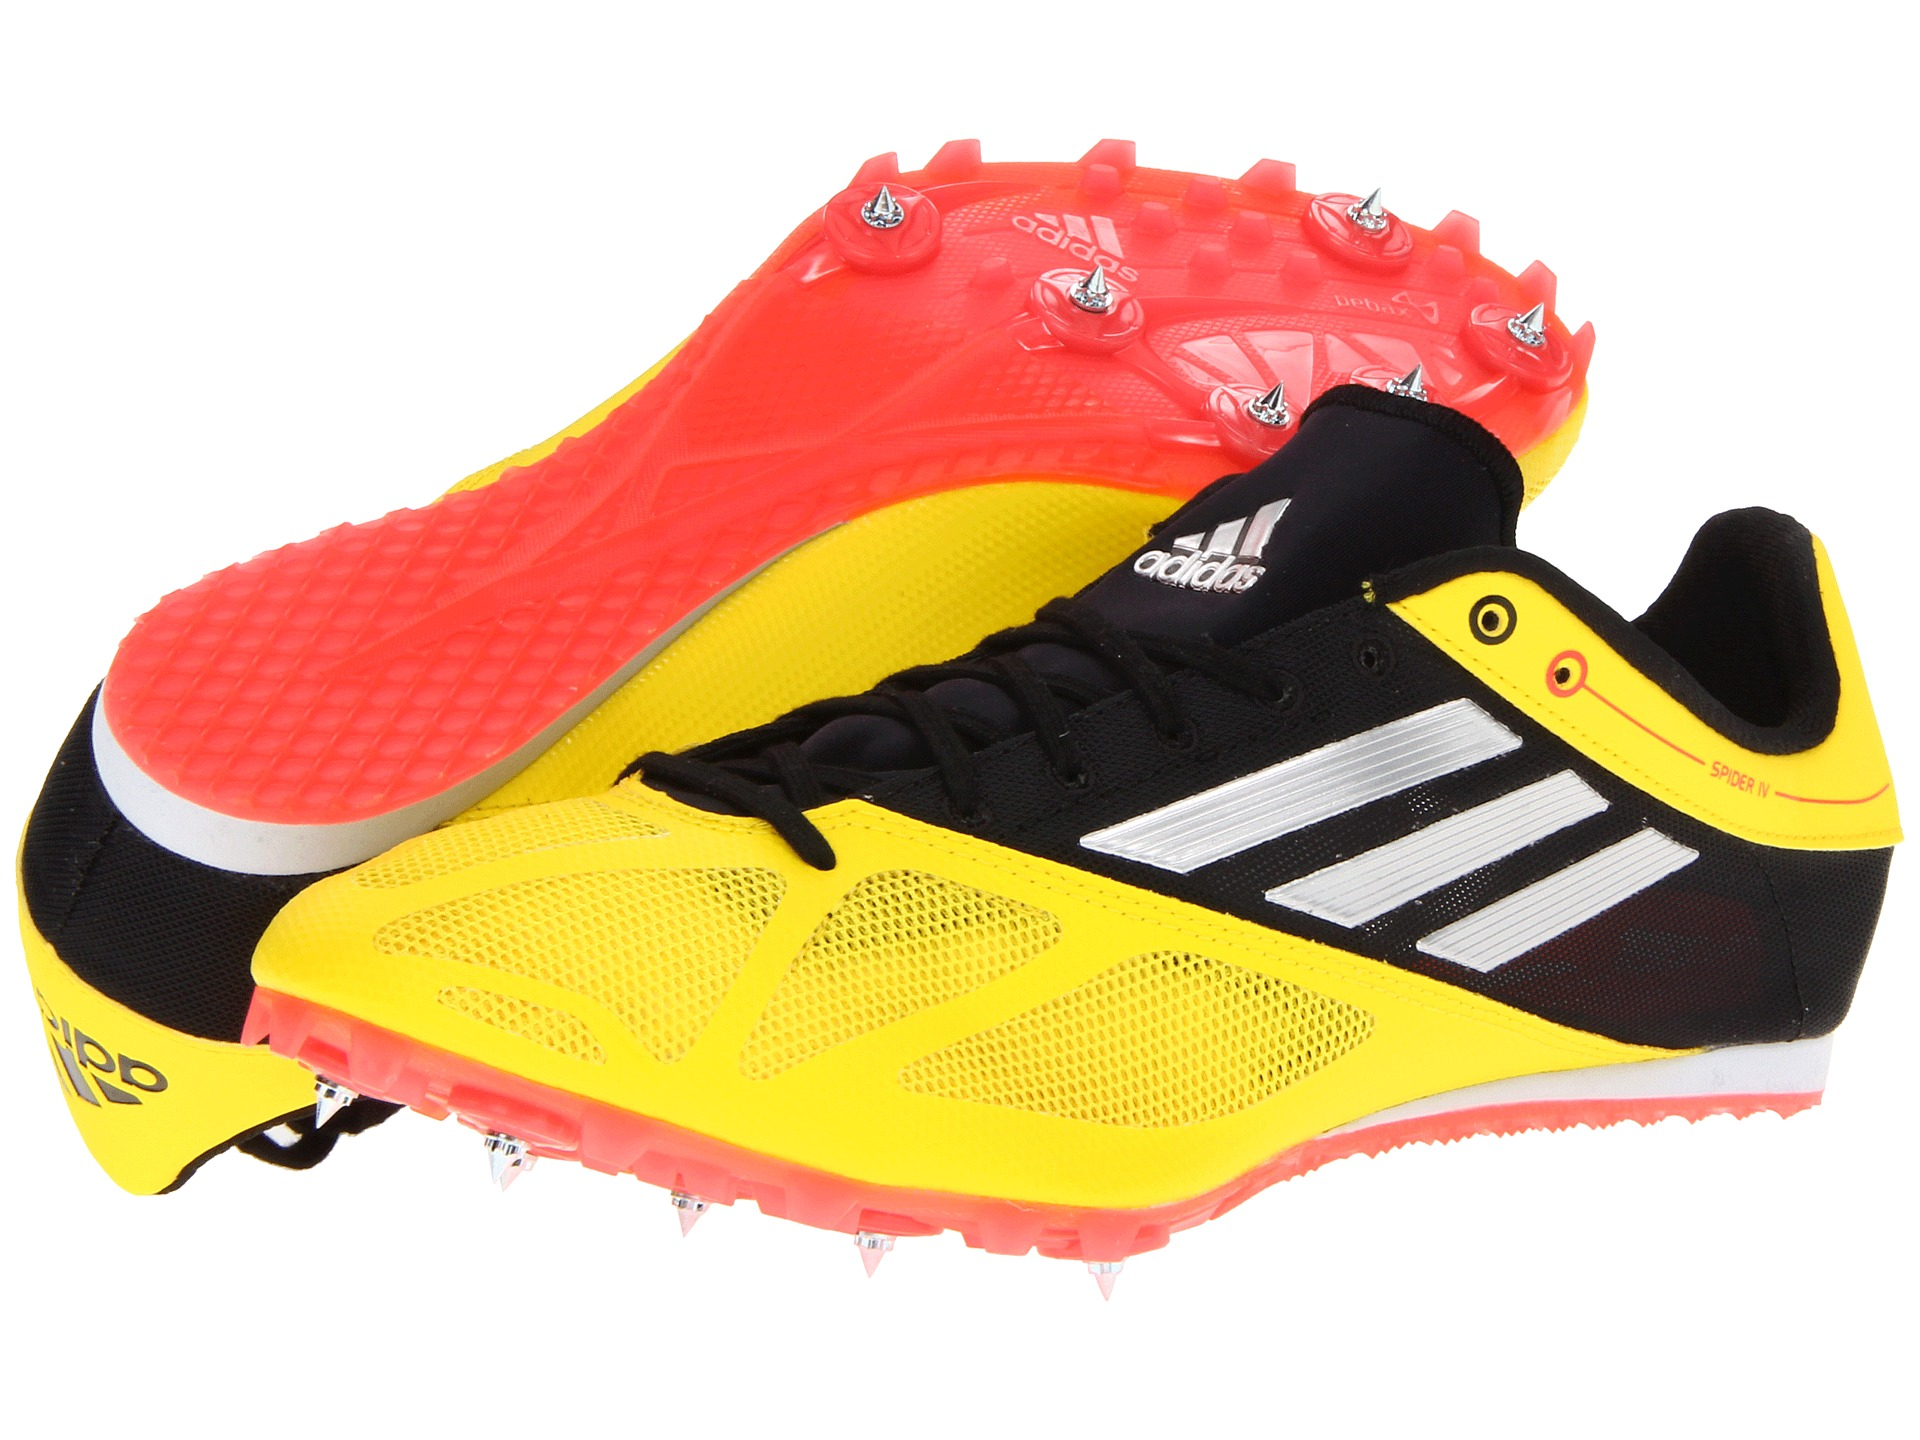 Adidas Spikeless Track Shoes